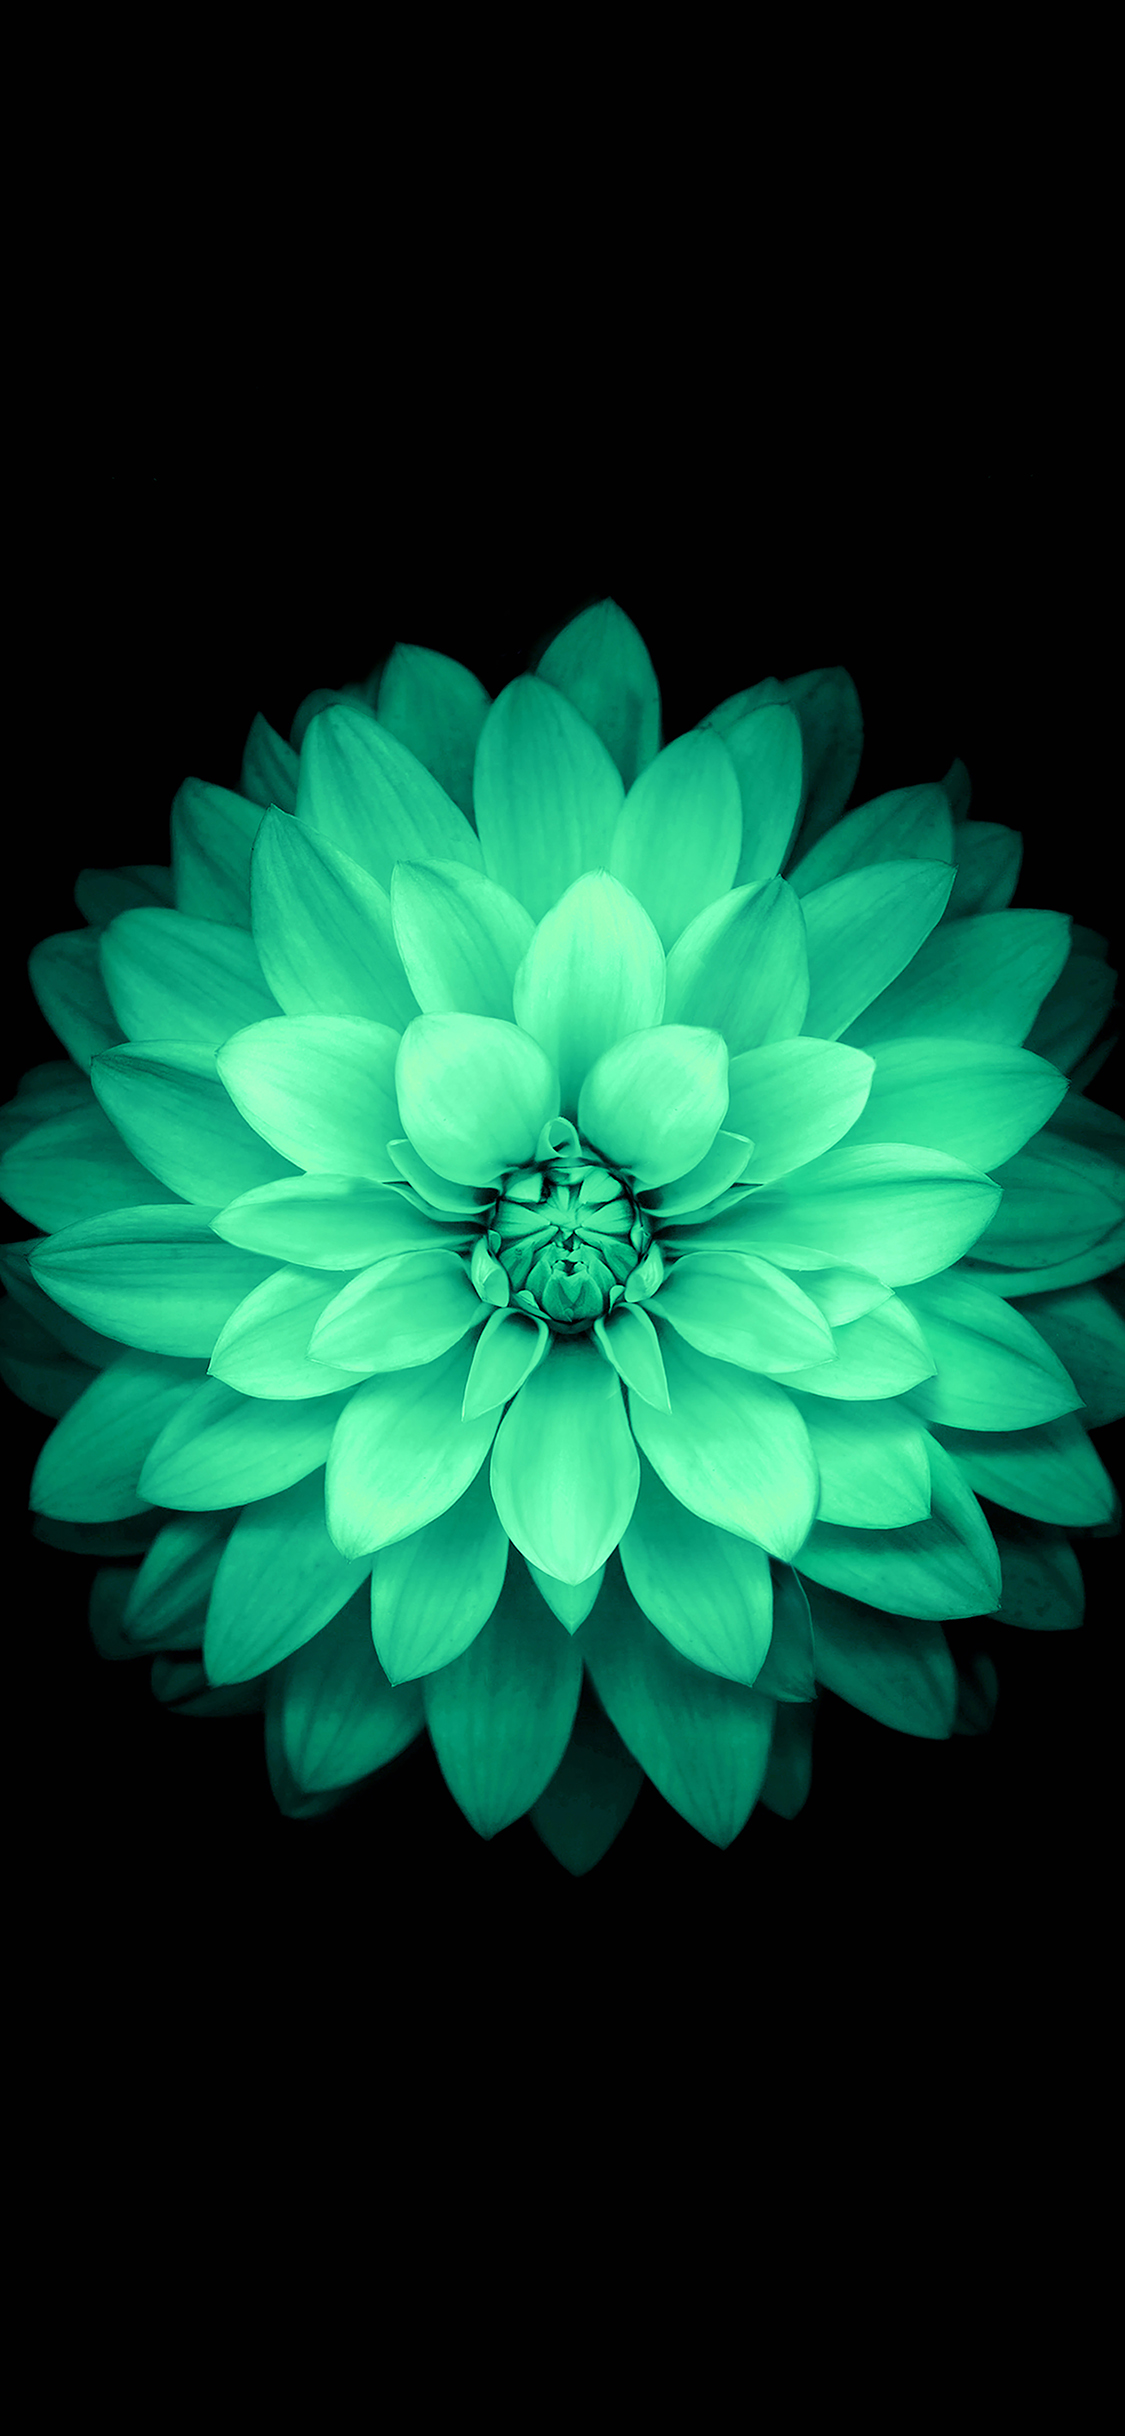 iPhoneXpapers.com-Apple-iPhone-wallpaper-ad76-apple-green-lotus-iphone6-plus-ios8-flower